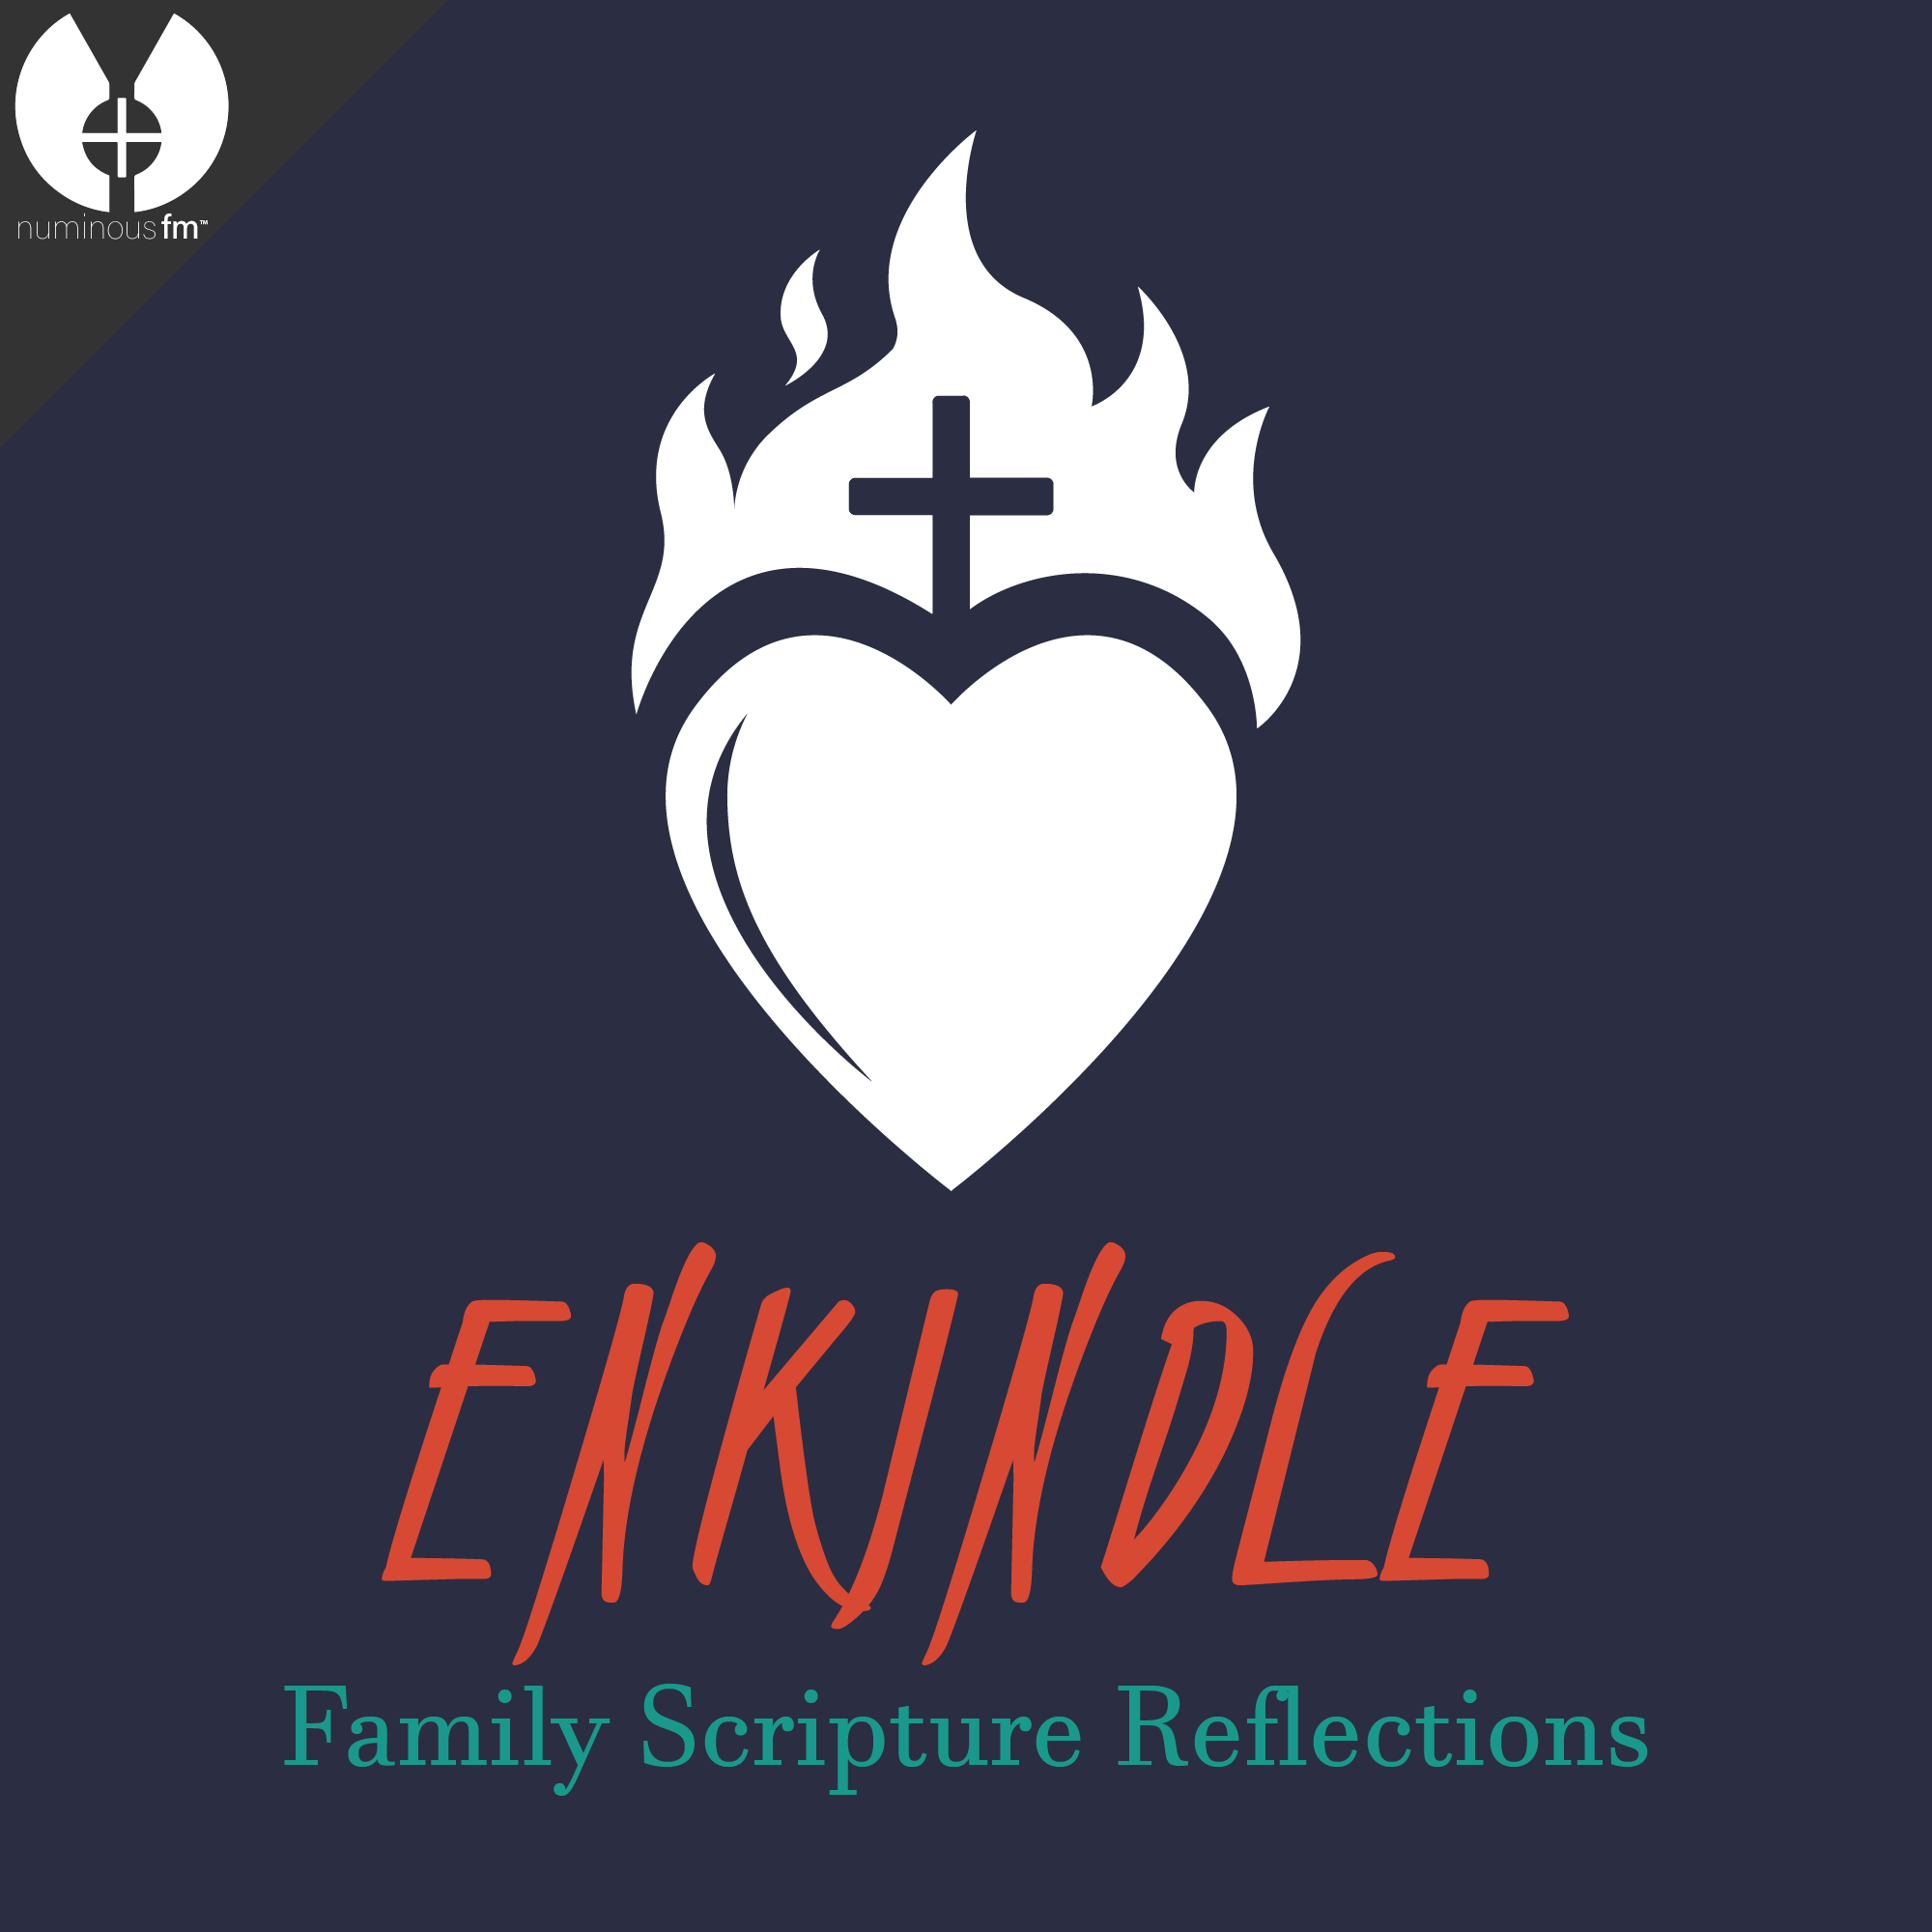 Enkindle: family scripture reflections